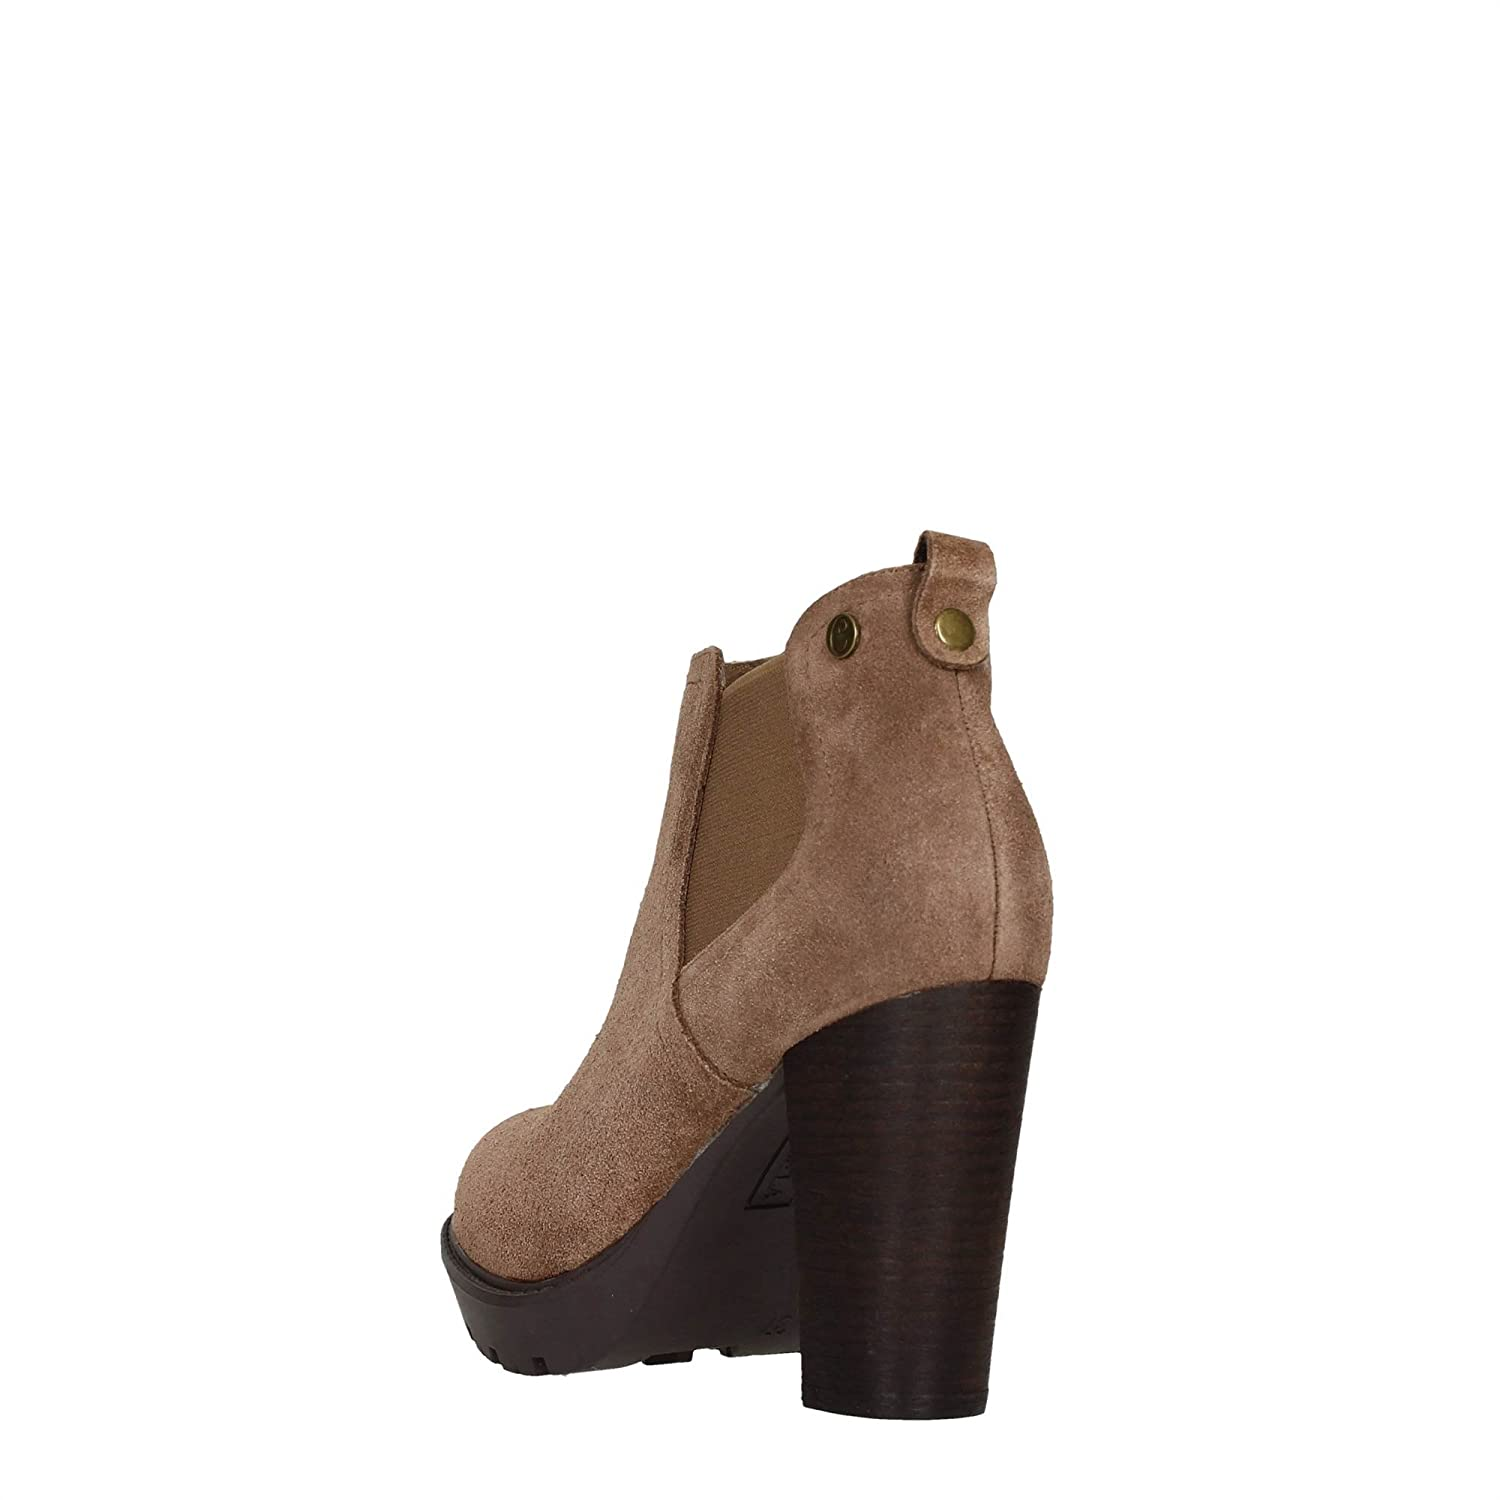 CARMELA FOOTWEAR - Botas para Mujer, Color marrón, Talla 36: Amazon.es: Zapatos y complementos